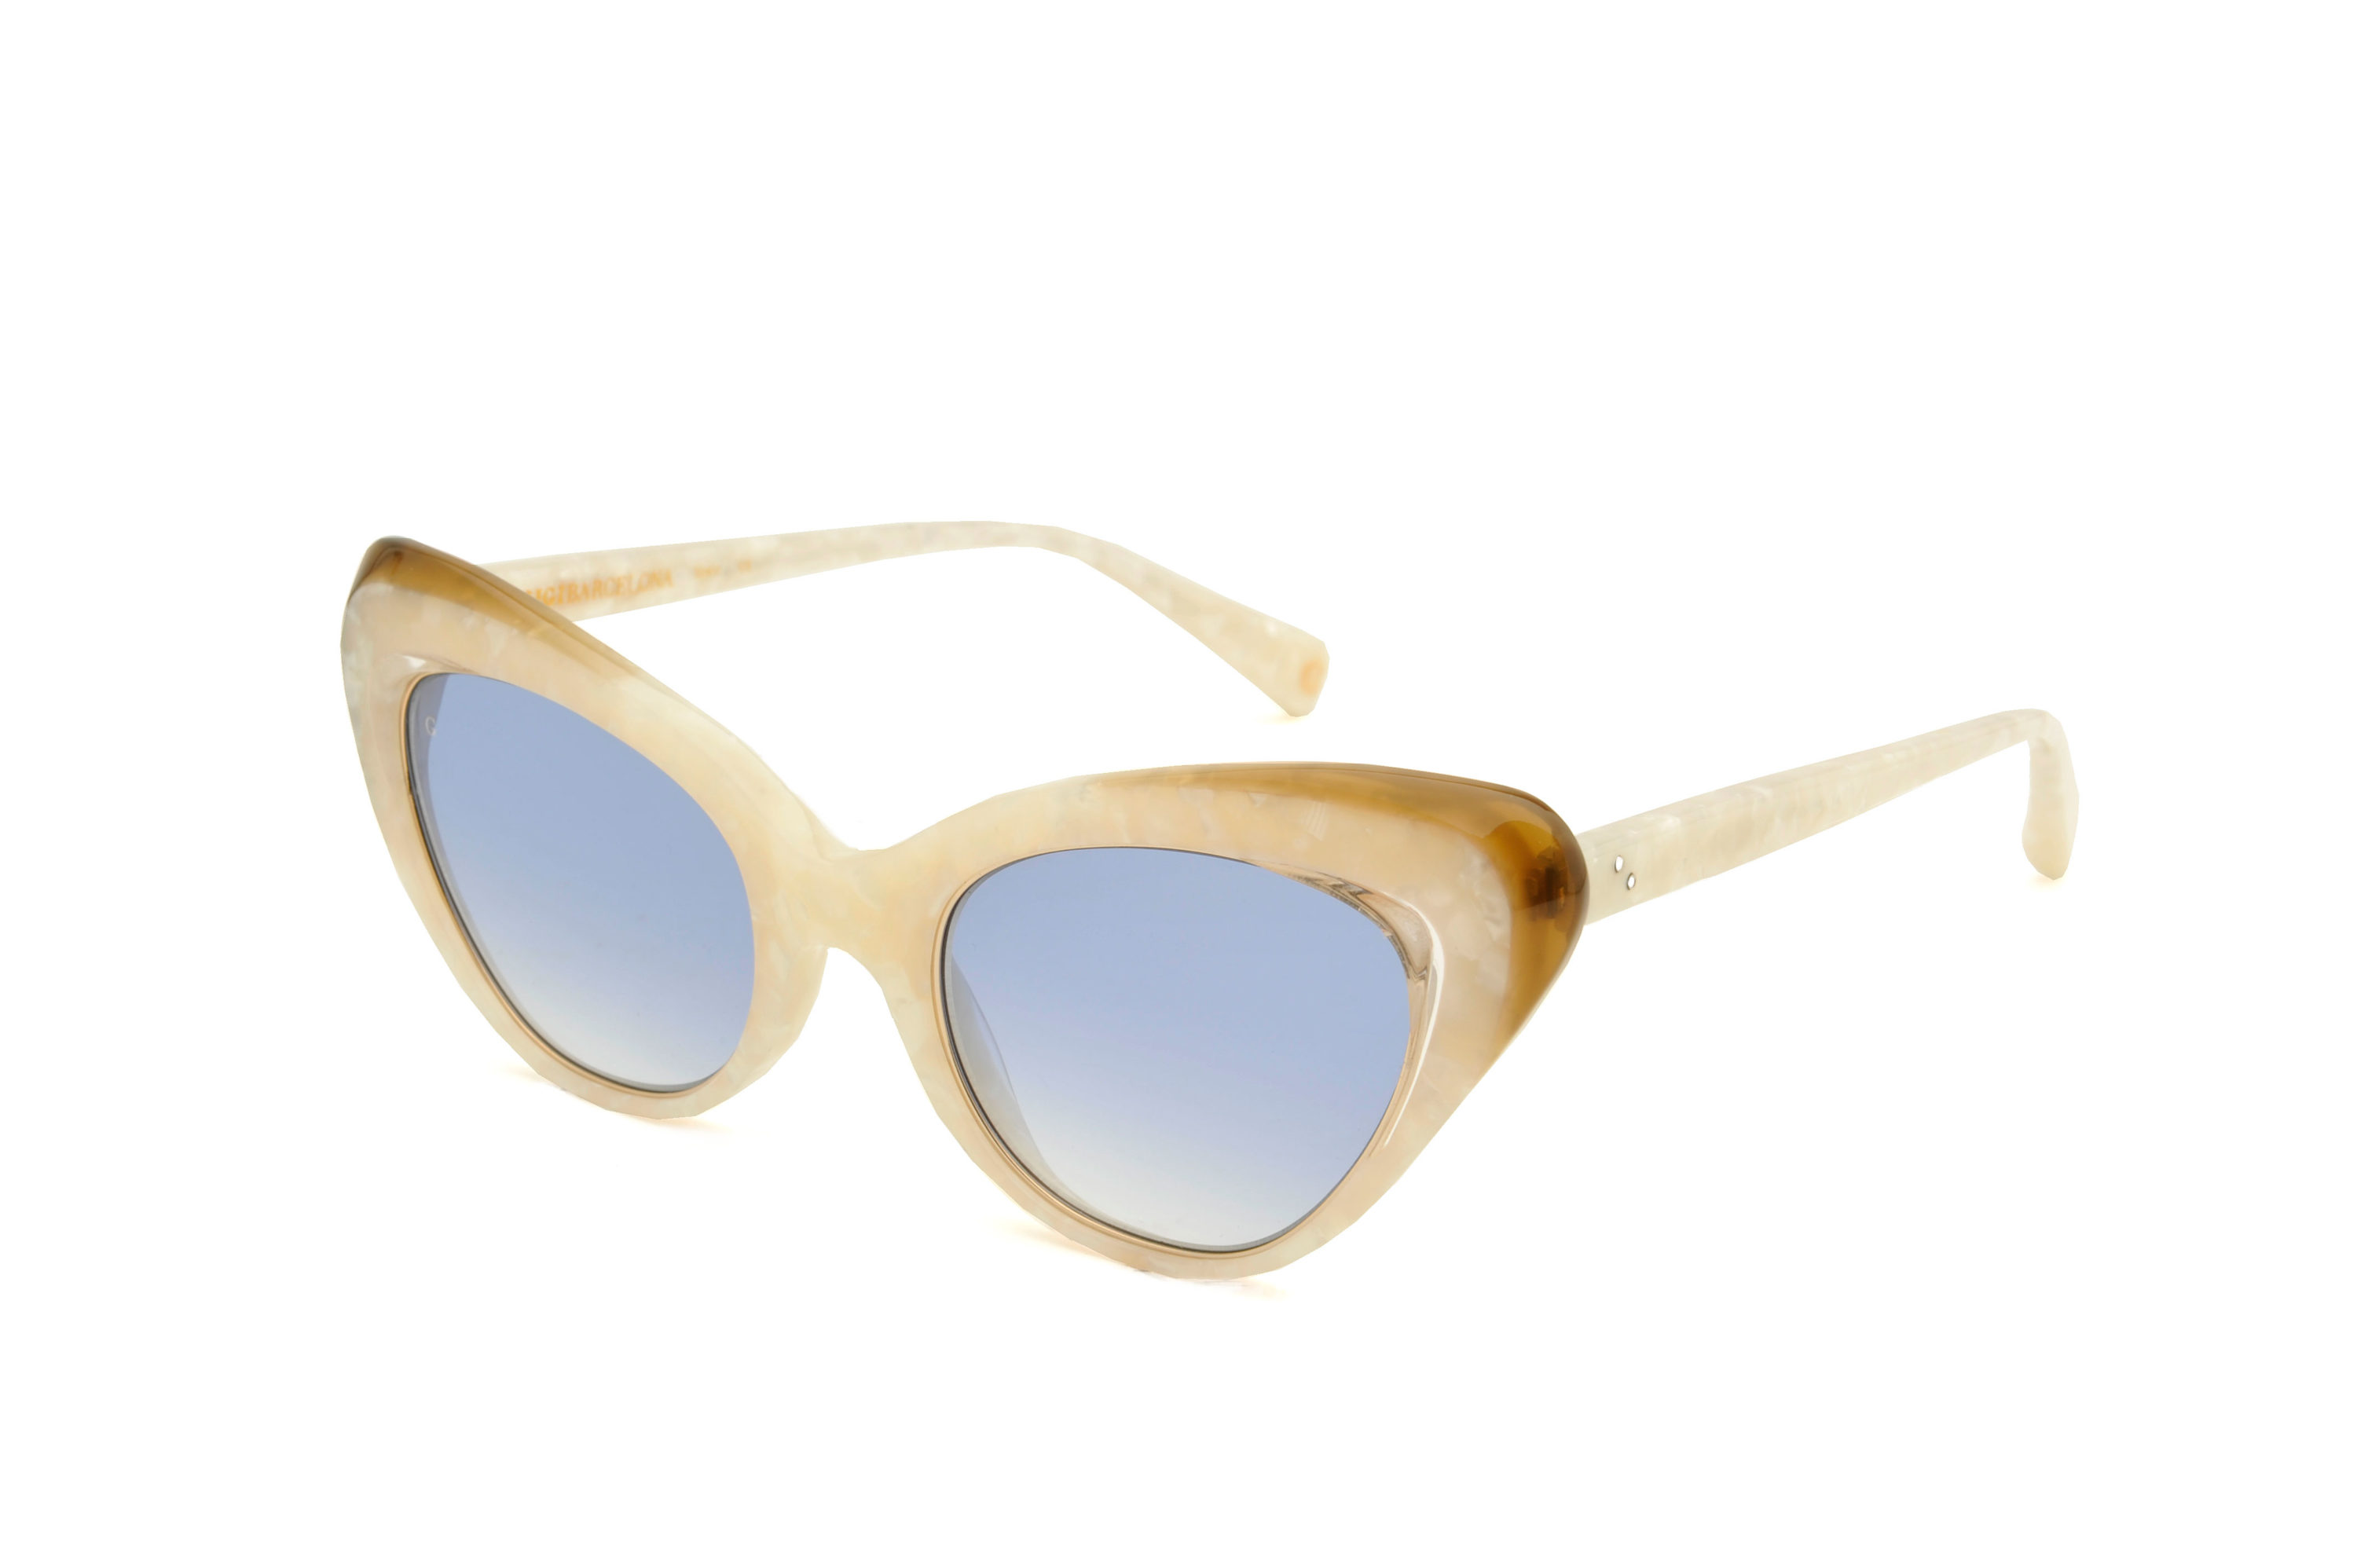 Valley acetate cat eye white sunglasses by GIGI Studios